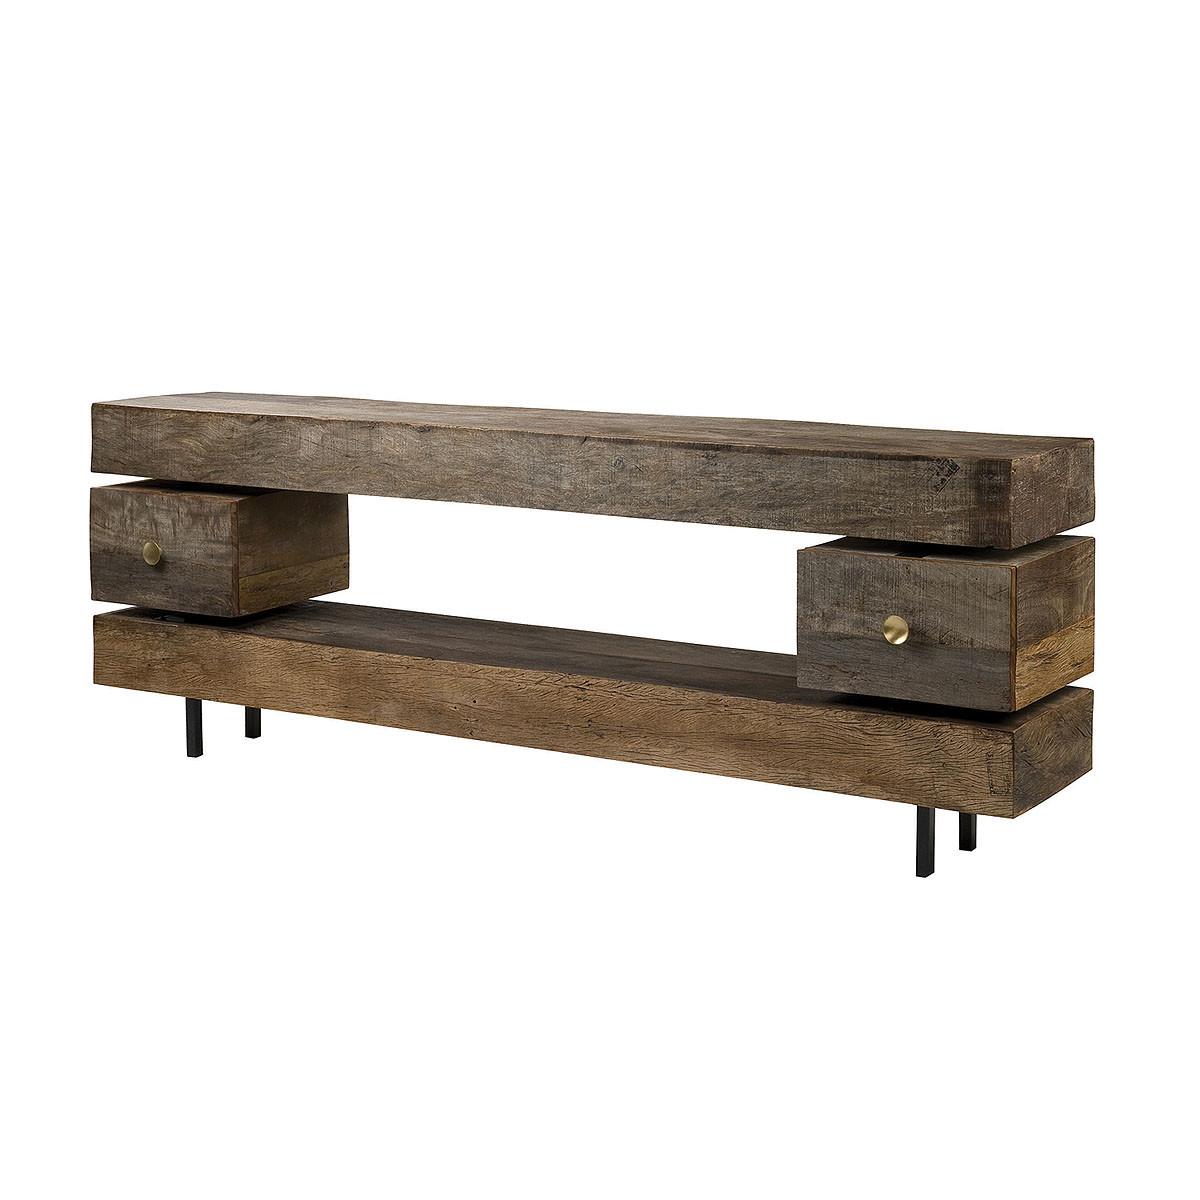 Reclaimed Wood Bina Dillon Console Table ... - Dillon Reclaimed Wood Console Table Zin Home